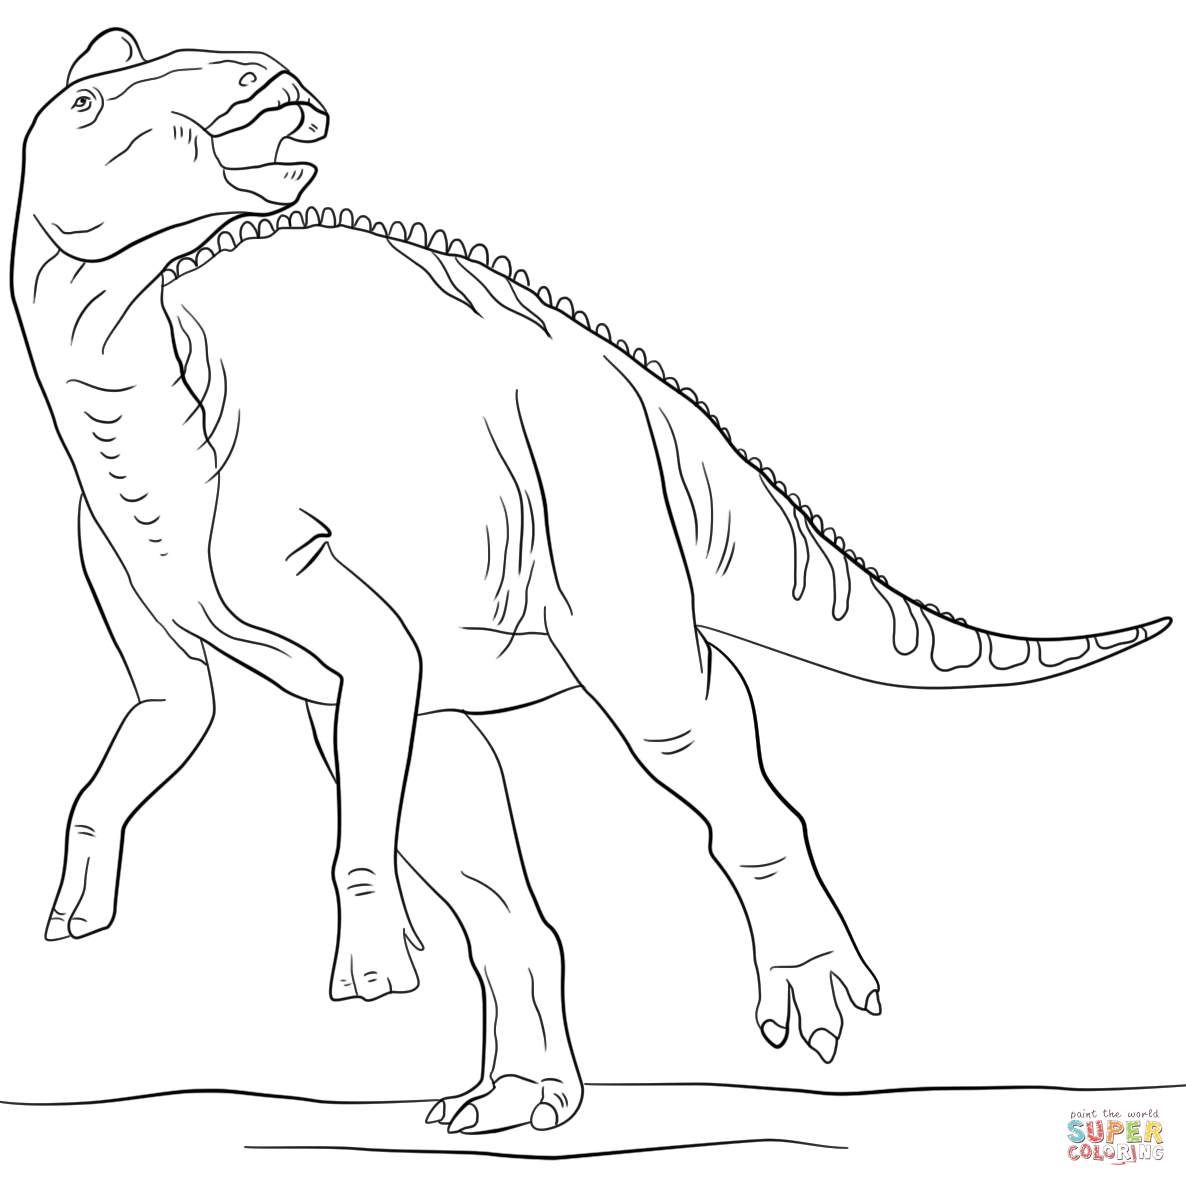 Jurassic Park Spinosaurus Coloring Pages Pictures to Pin